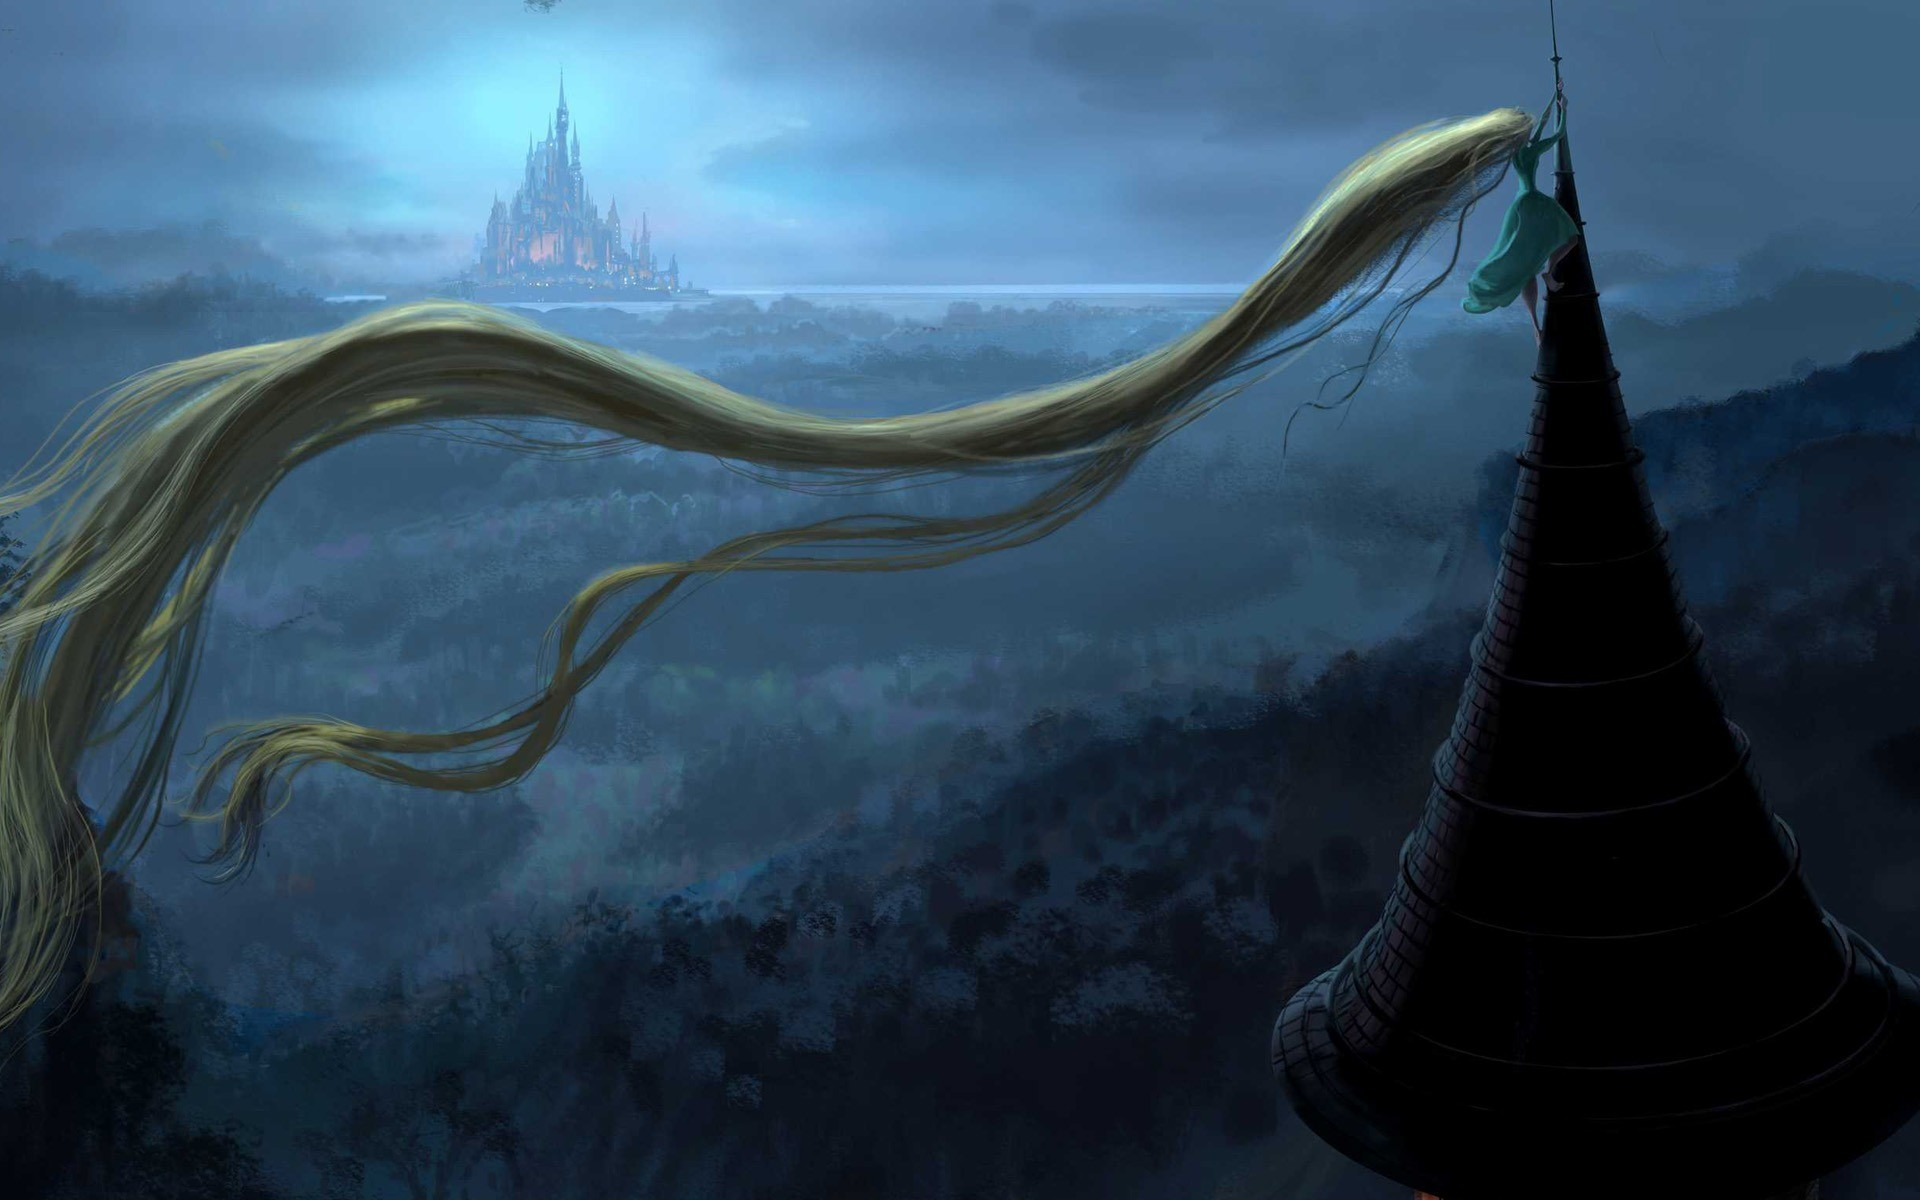 1920x1200 HD Wallpaper And Background Photos Of Disney Princess Rapunzel For Fans Tangled Images